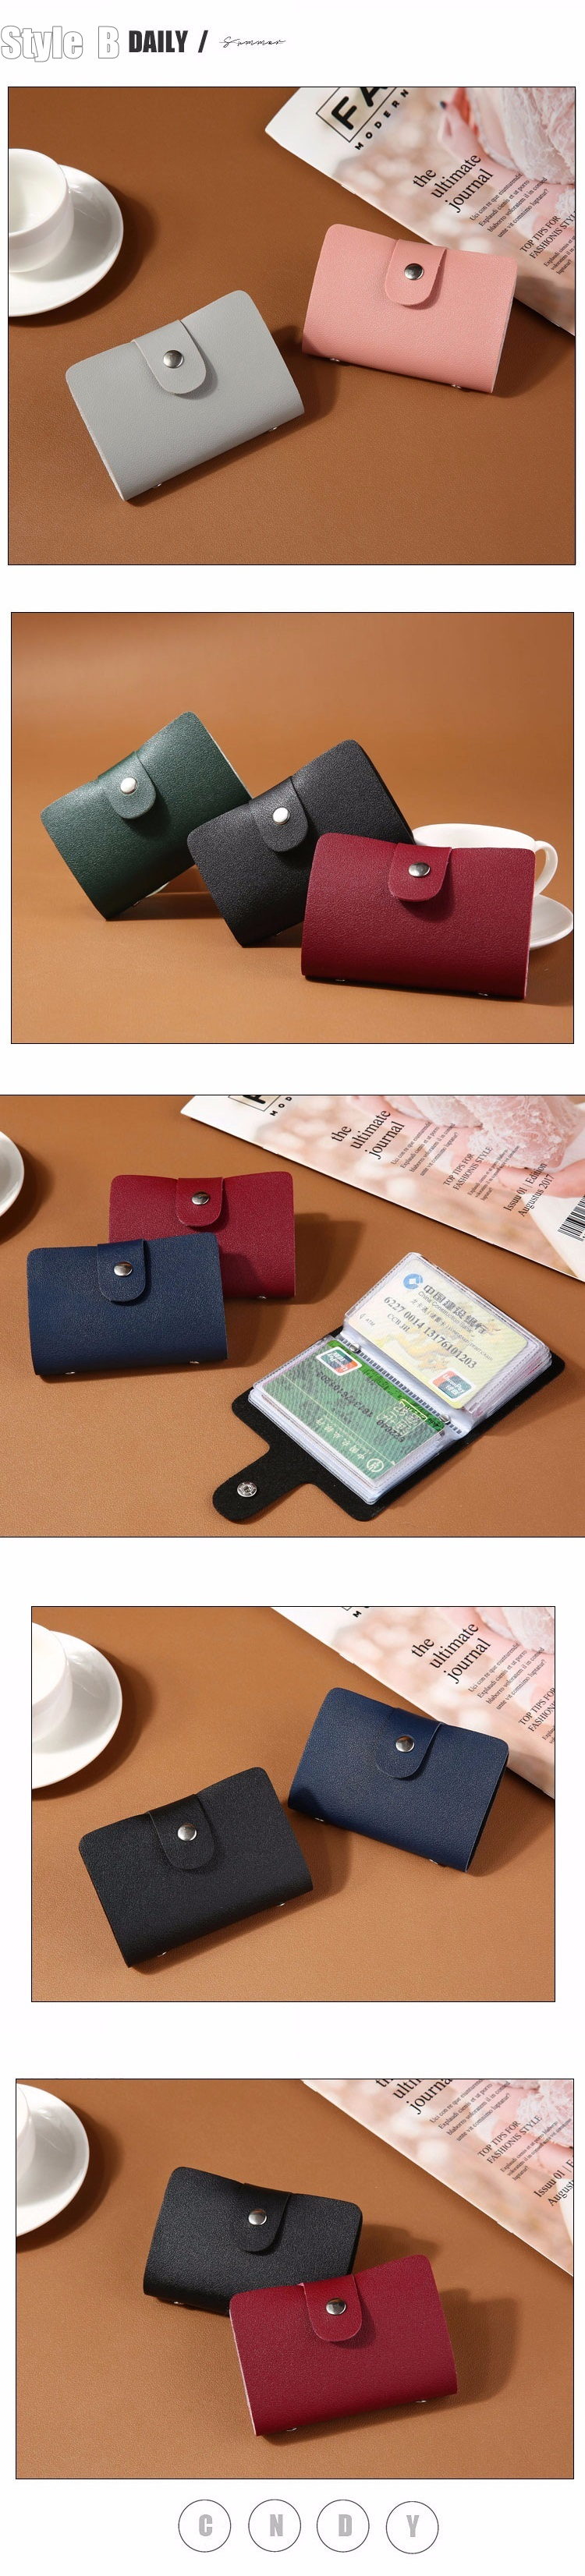 HTB1YP71cG5s3KVjSZFNq6AD3FXag - New PU Leather Function 24 Bits Card Case Business Card Holder Men Women Credit Passport Card Bag ID Passport Card Wallet H088